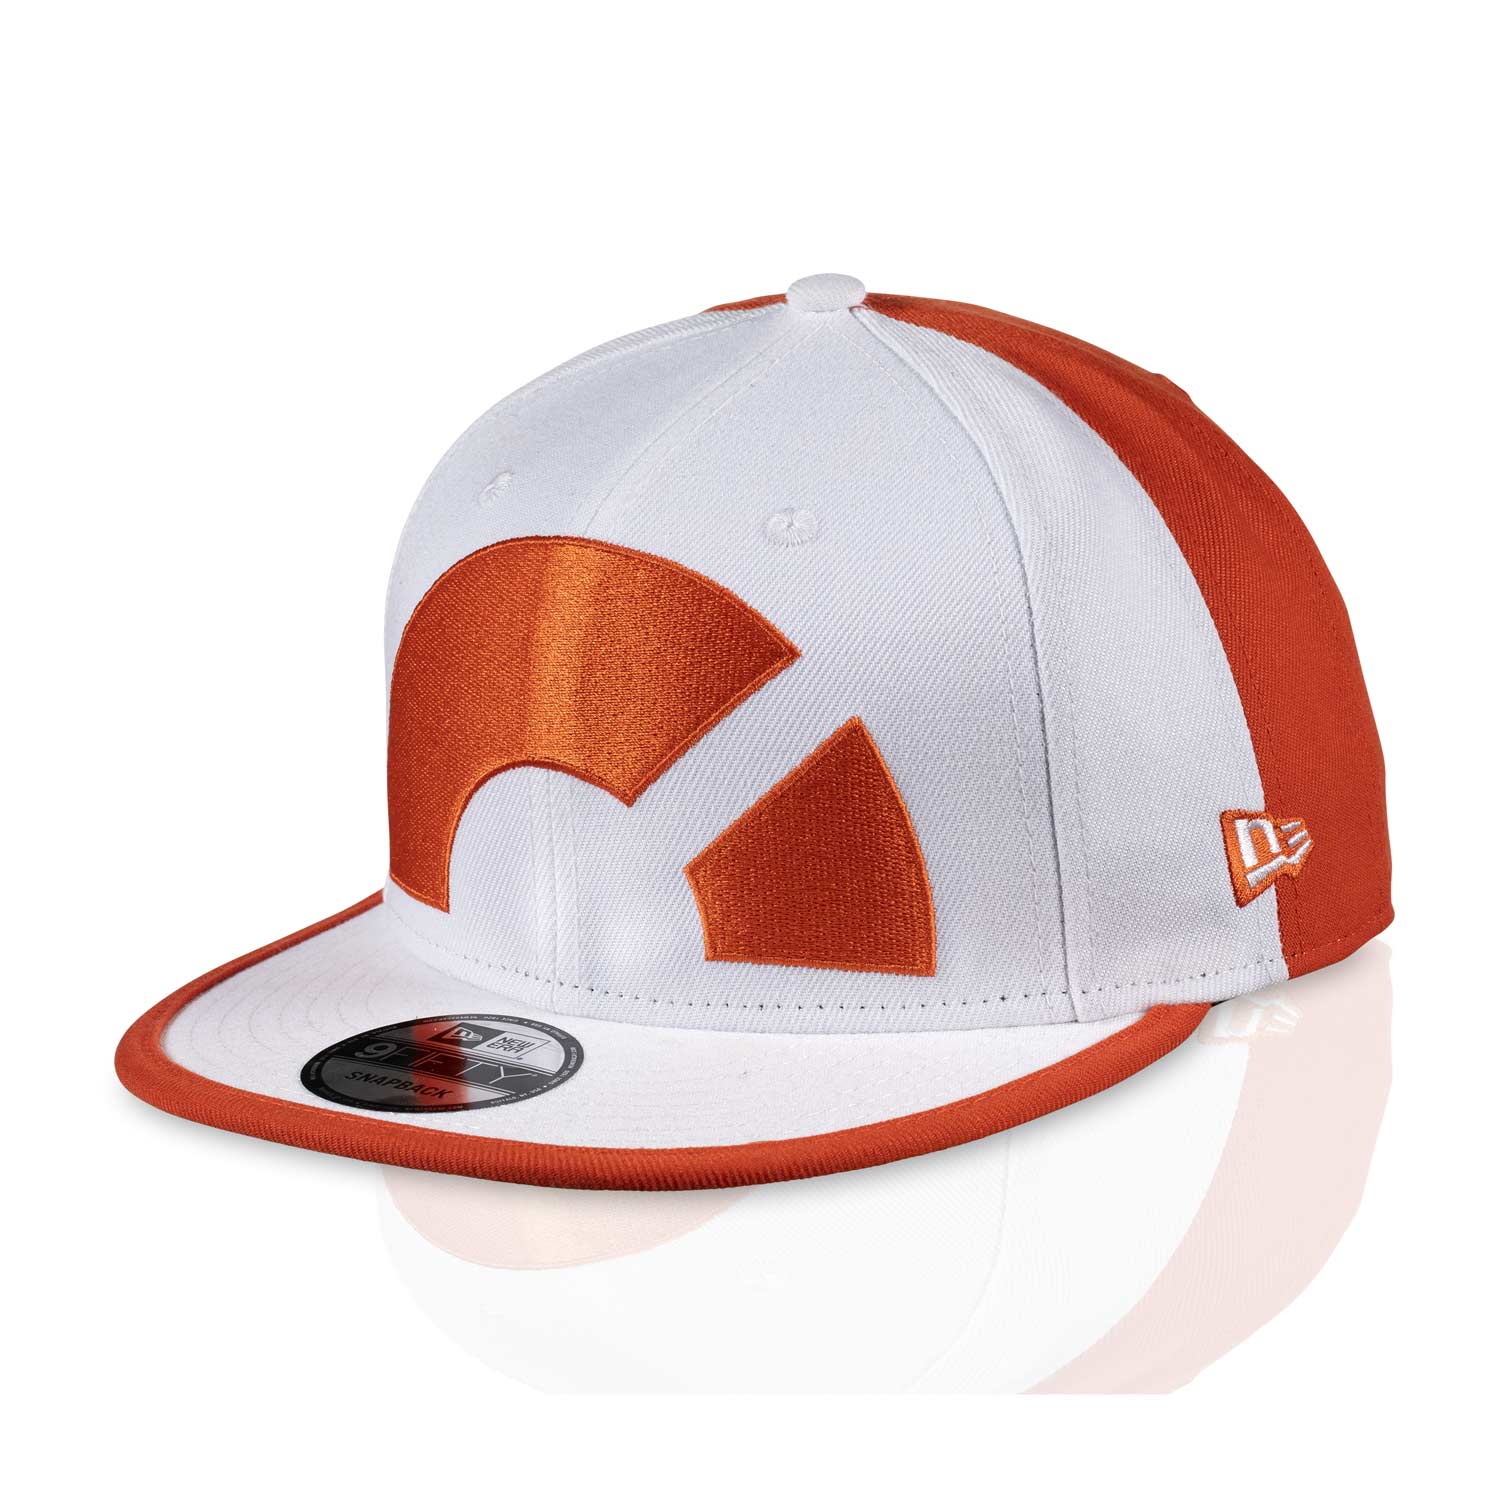 Image for Pokémon  Let s Go Trainer Male Baseball Cap by New Era (One Size b7ba862e3af